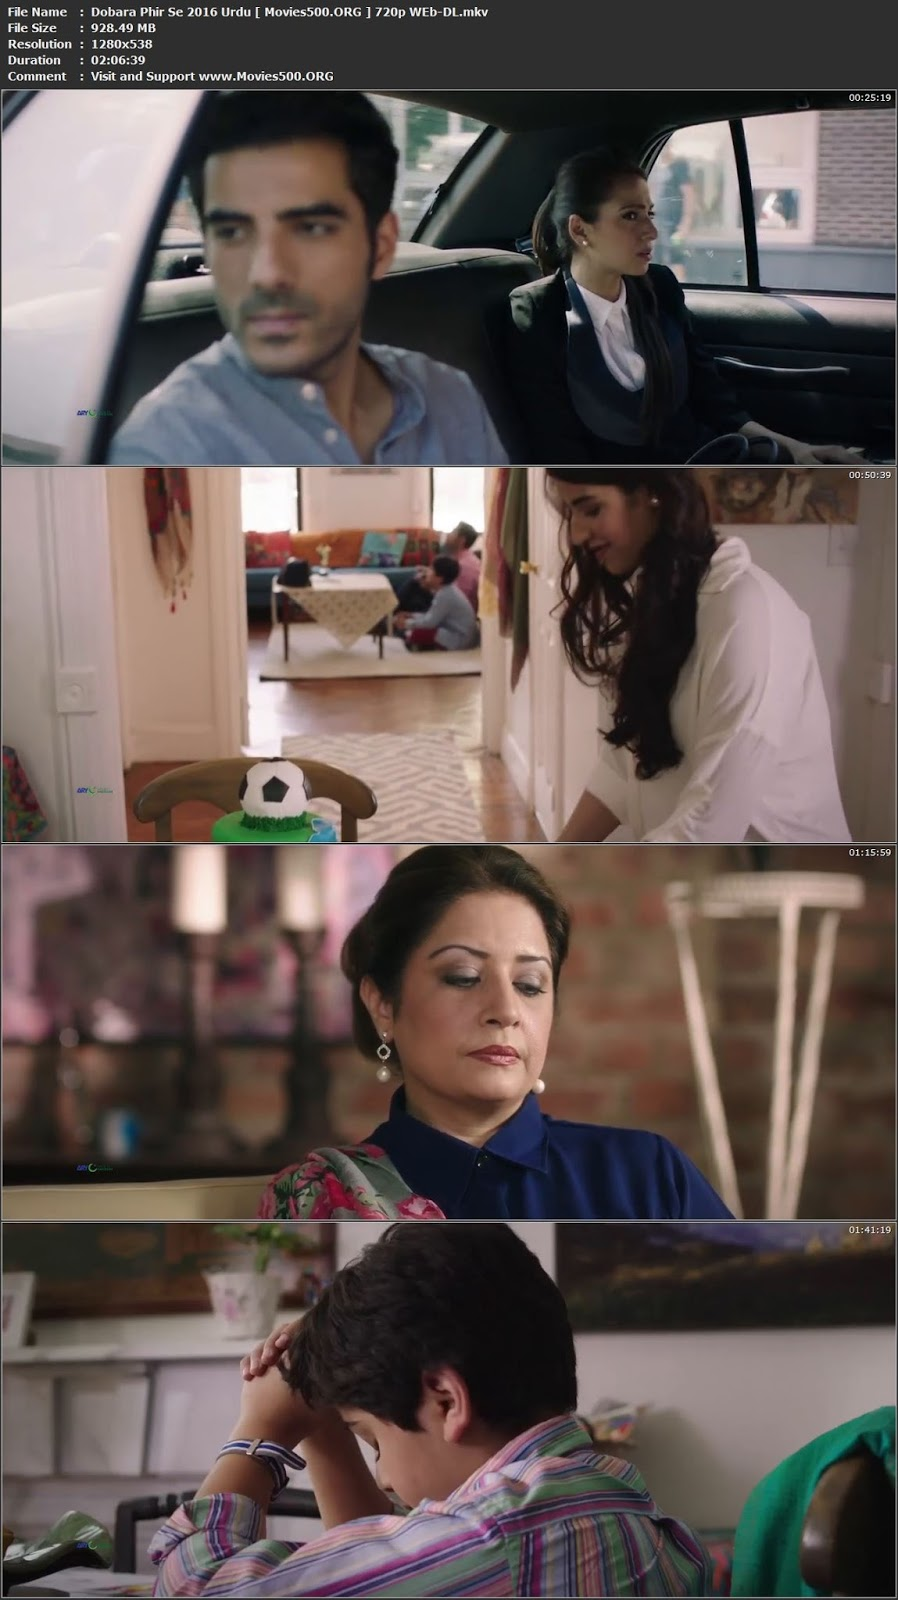 Dobara Phir Se 2016 Urdu Pakistani Download WEB DL 720p at xcharge.net